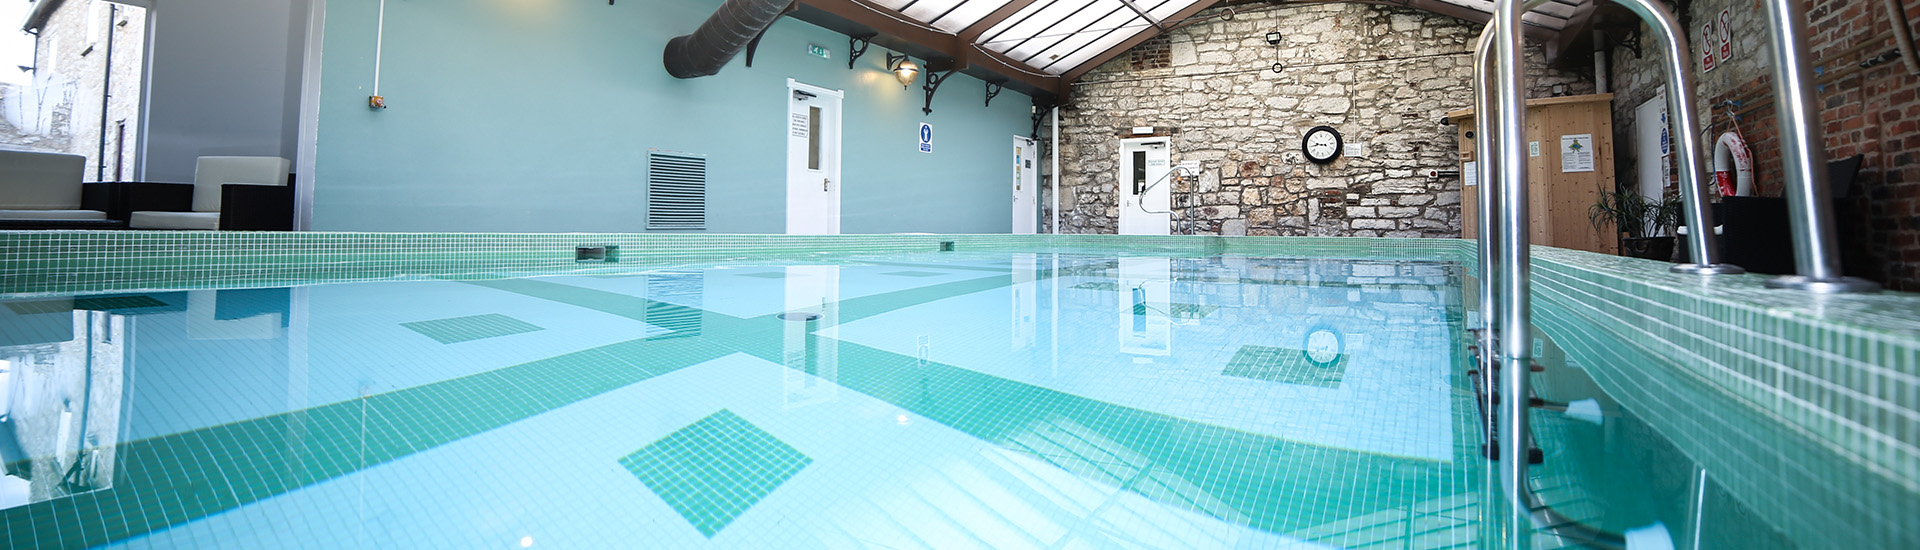 Faenol fawr leisure facilities gym in north wales for North wales hotels with swimming pools